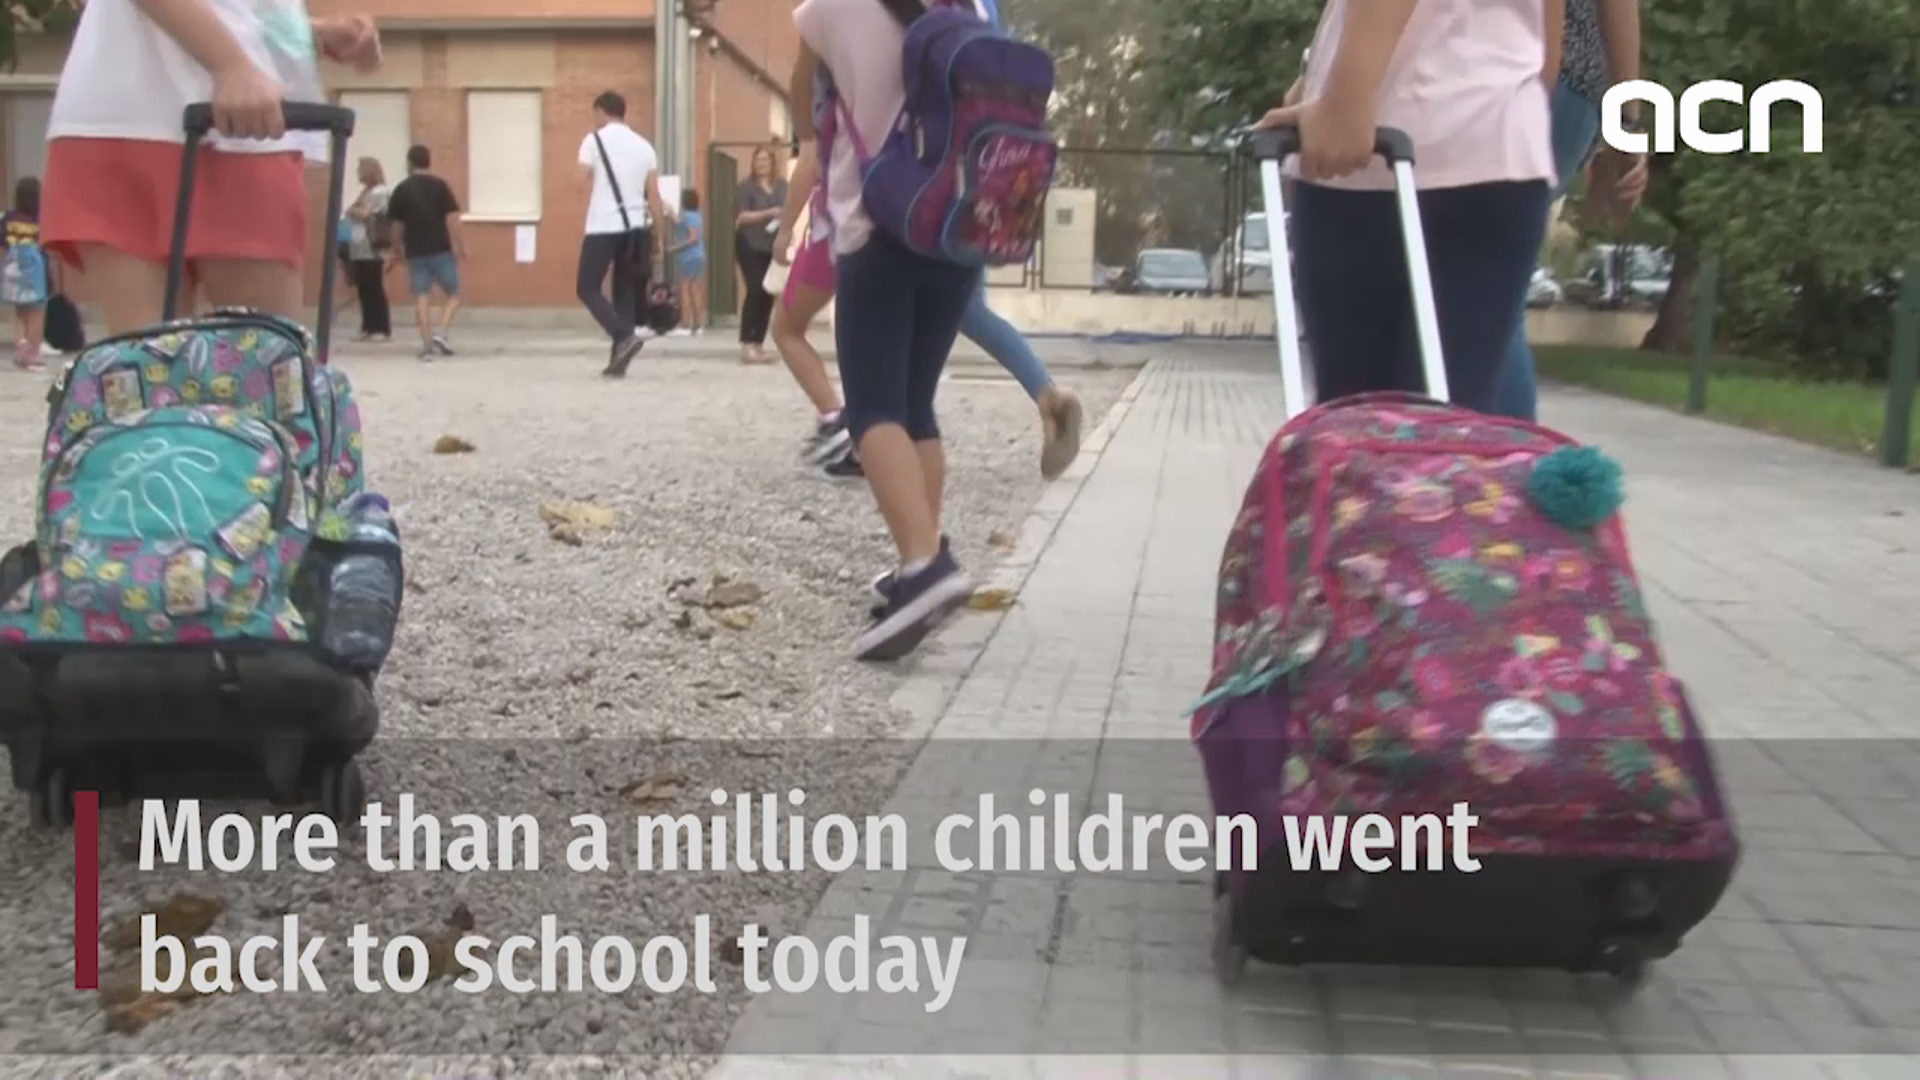 Back to school: more than 1M pupils return to classroom